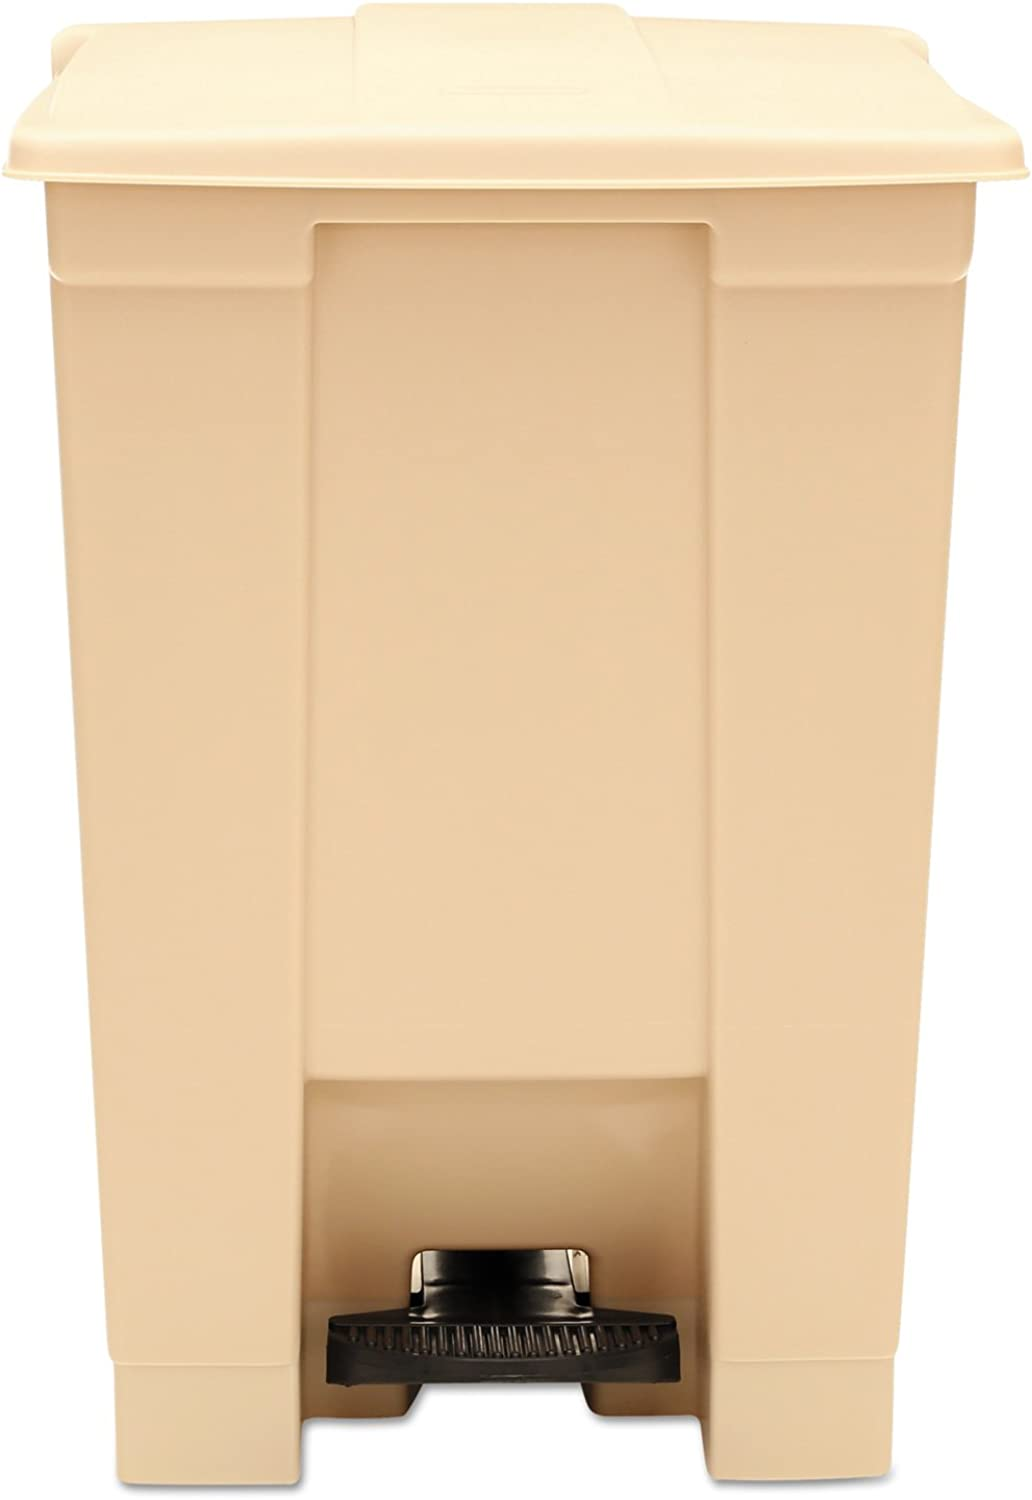 Rubbermaid Commercial FG614400BEIG Step-On Lid Wastebasket, 12-gallon, Beige